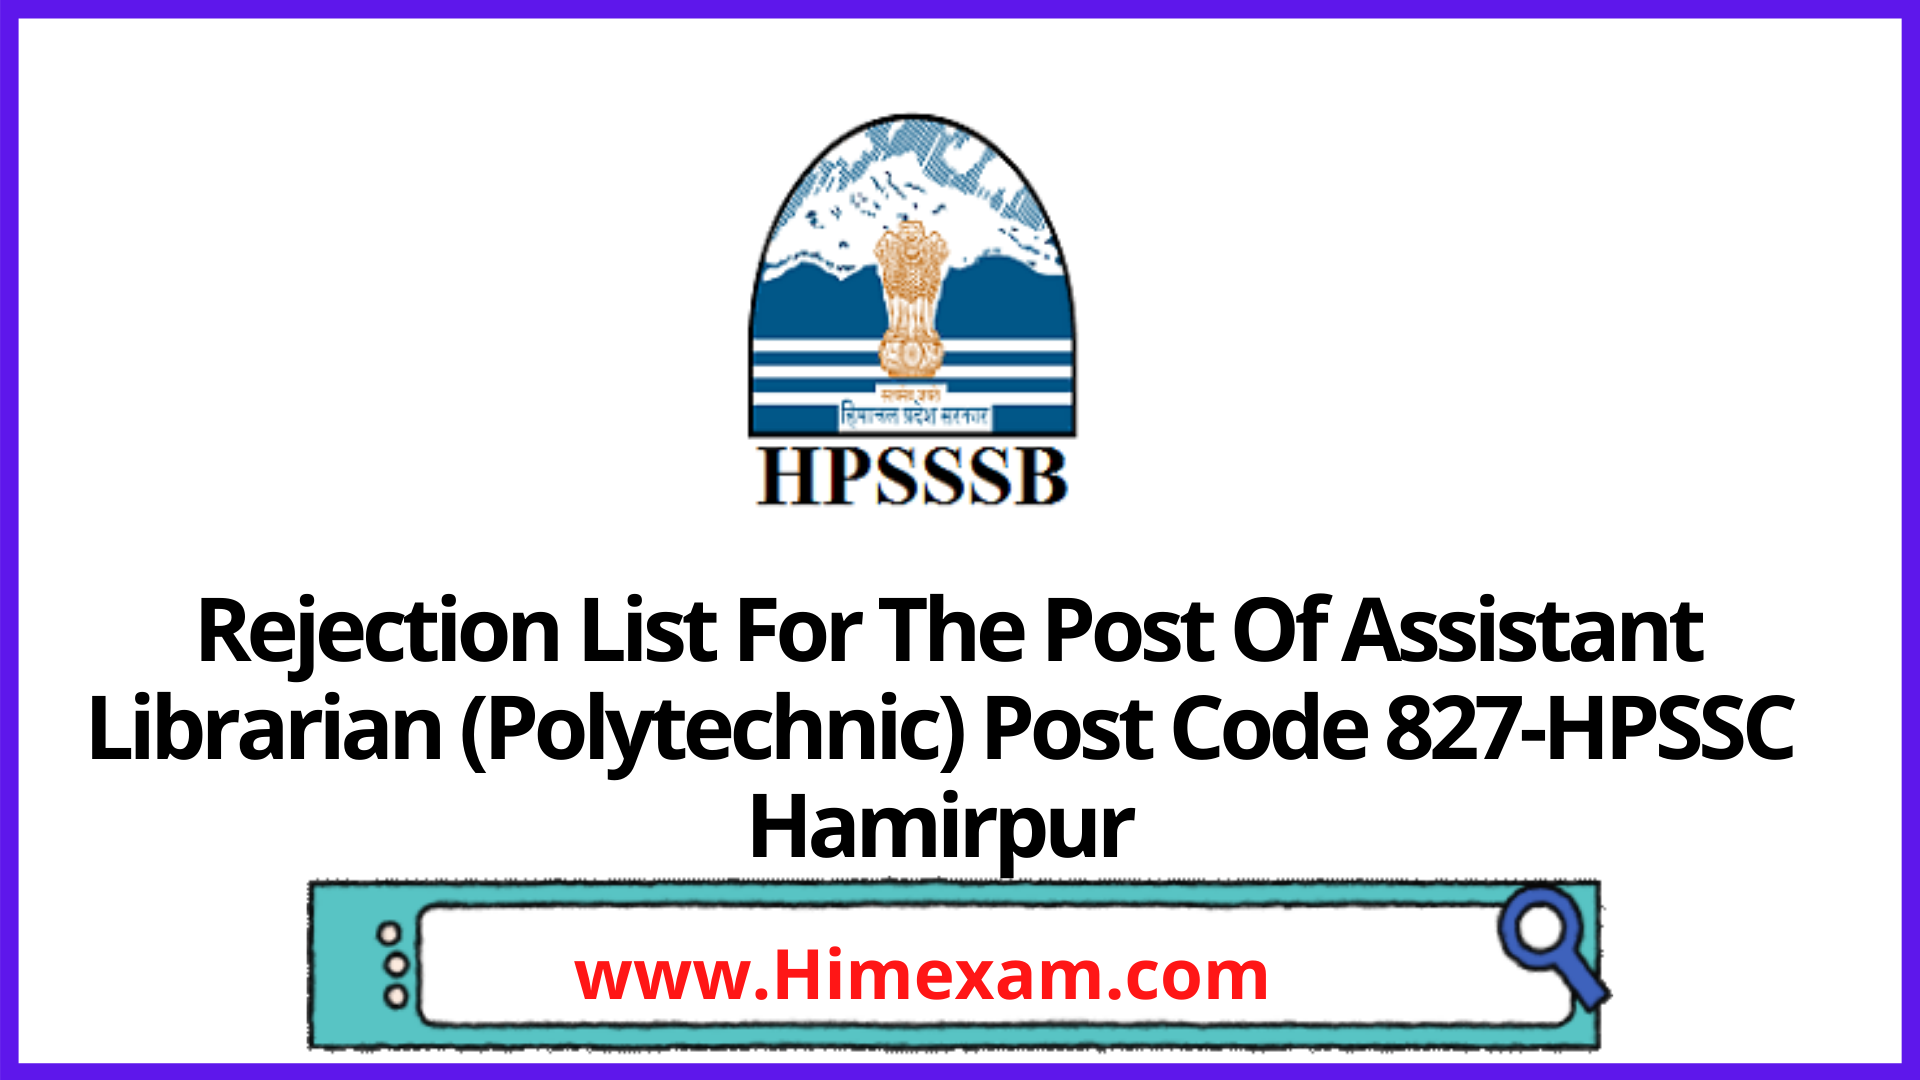 Rejection List For The Post Of Assistant Librarian (Polytechnic) Post Code 827-HPSSC Hamirpur